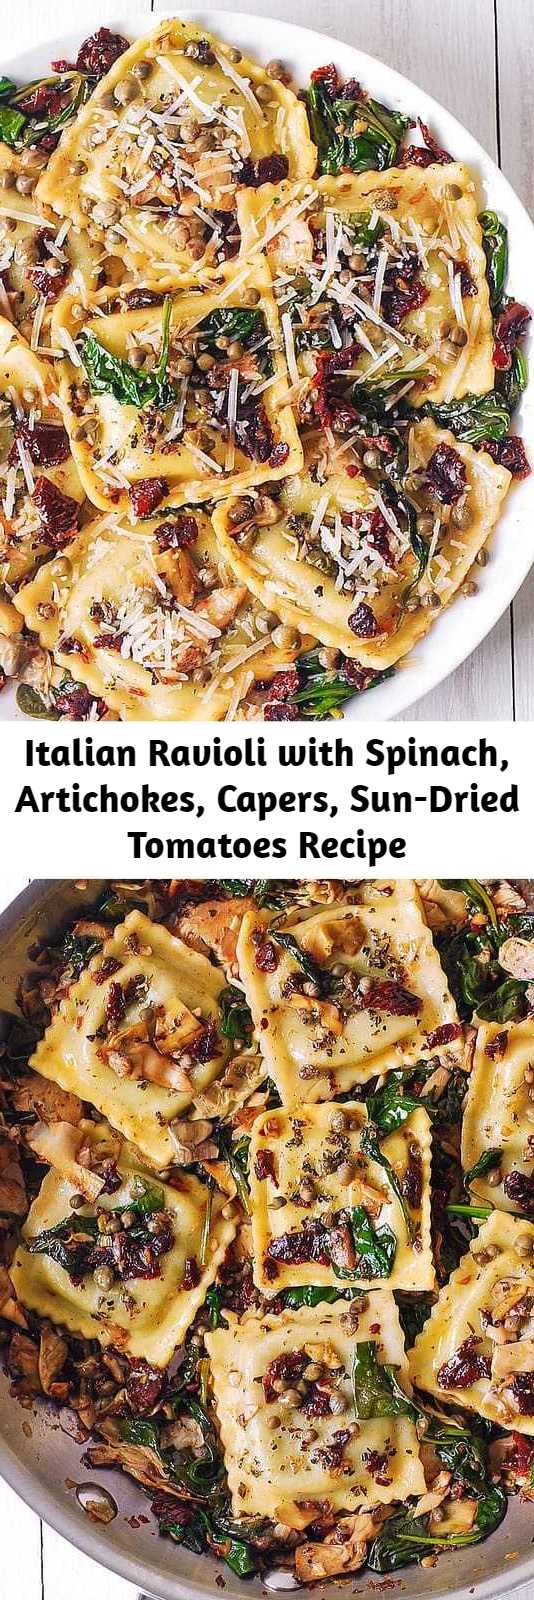 Italian Ravioli with Spinach, Artichokes, Capers, Sun-Dried Tomatoes Recipe - Italian Ravioli with Spinach, Artichokes, Capers, Sun-Dried Tomatoes. The vegetables are sautéed in garlic and olive oil. Meatless, refreshing, Mediterranean style pasta recipe that doesn't need any meat - this meal will keep you full!